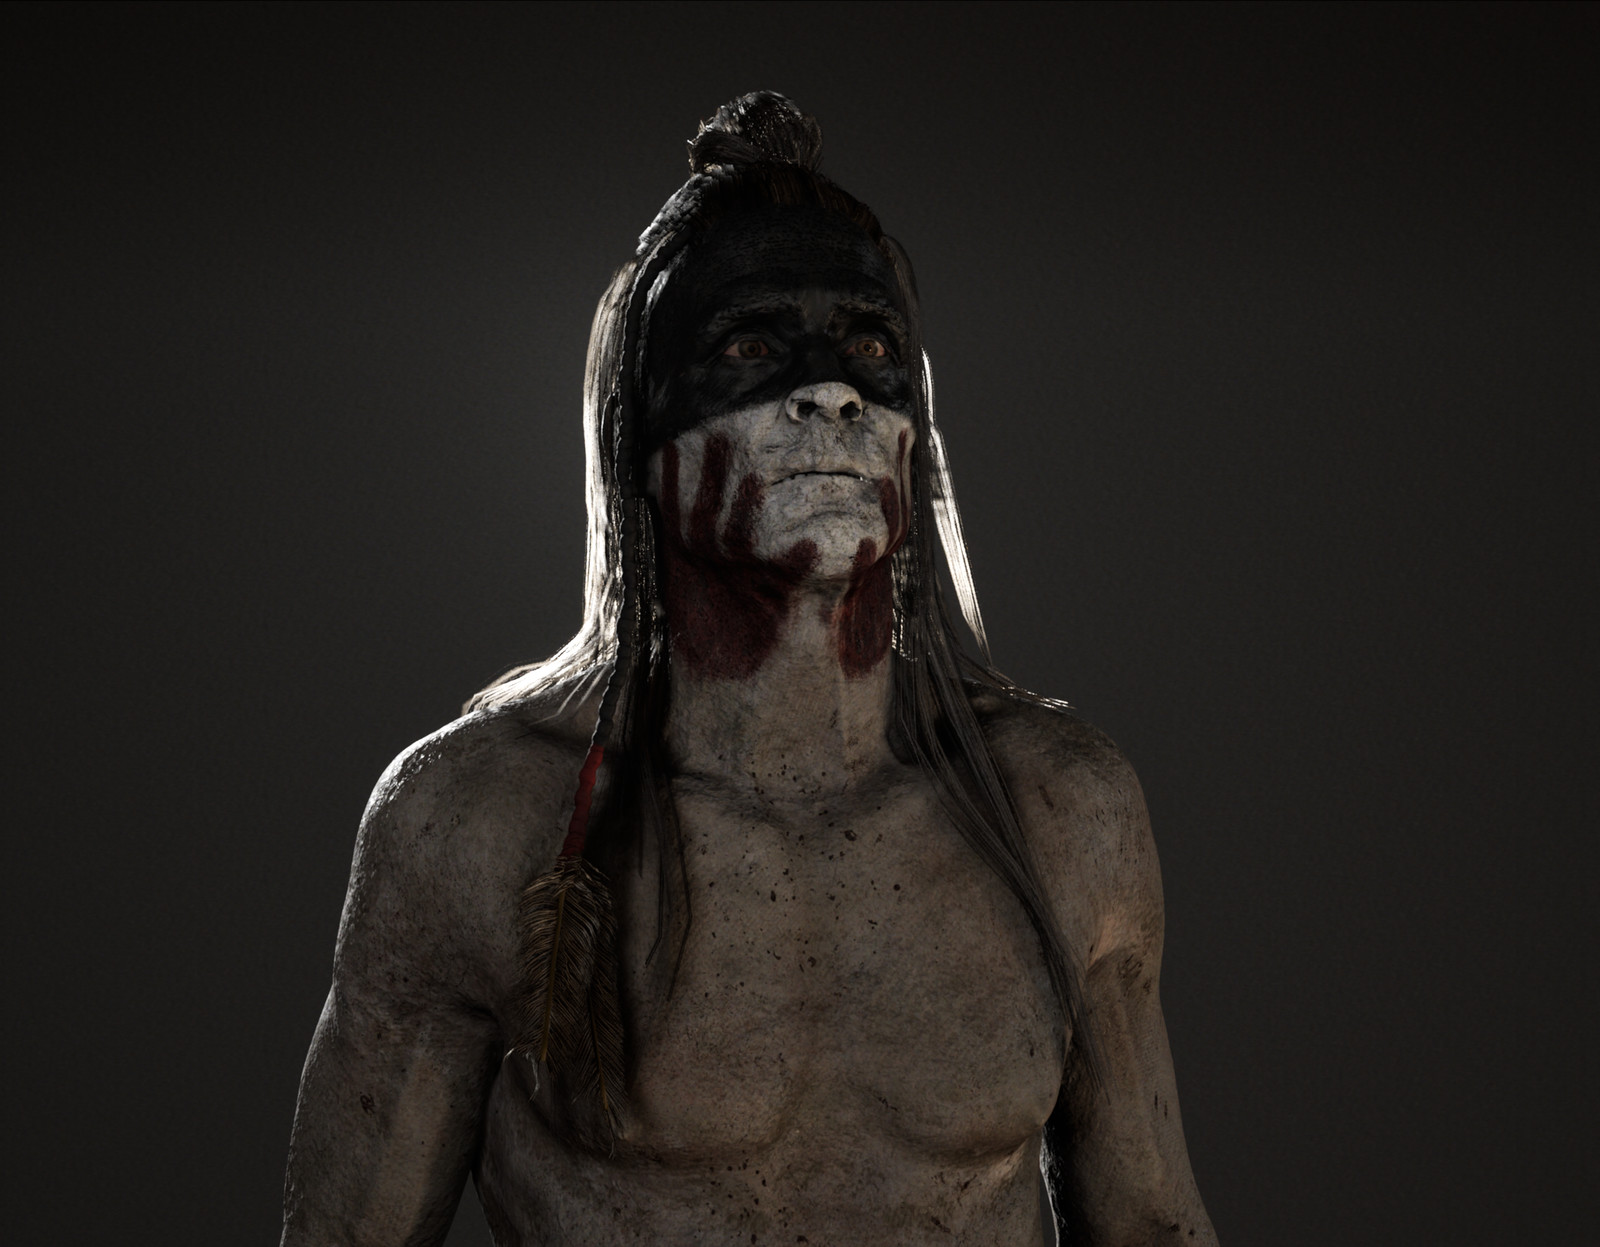 Akecheta from Westworld